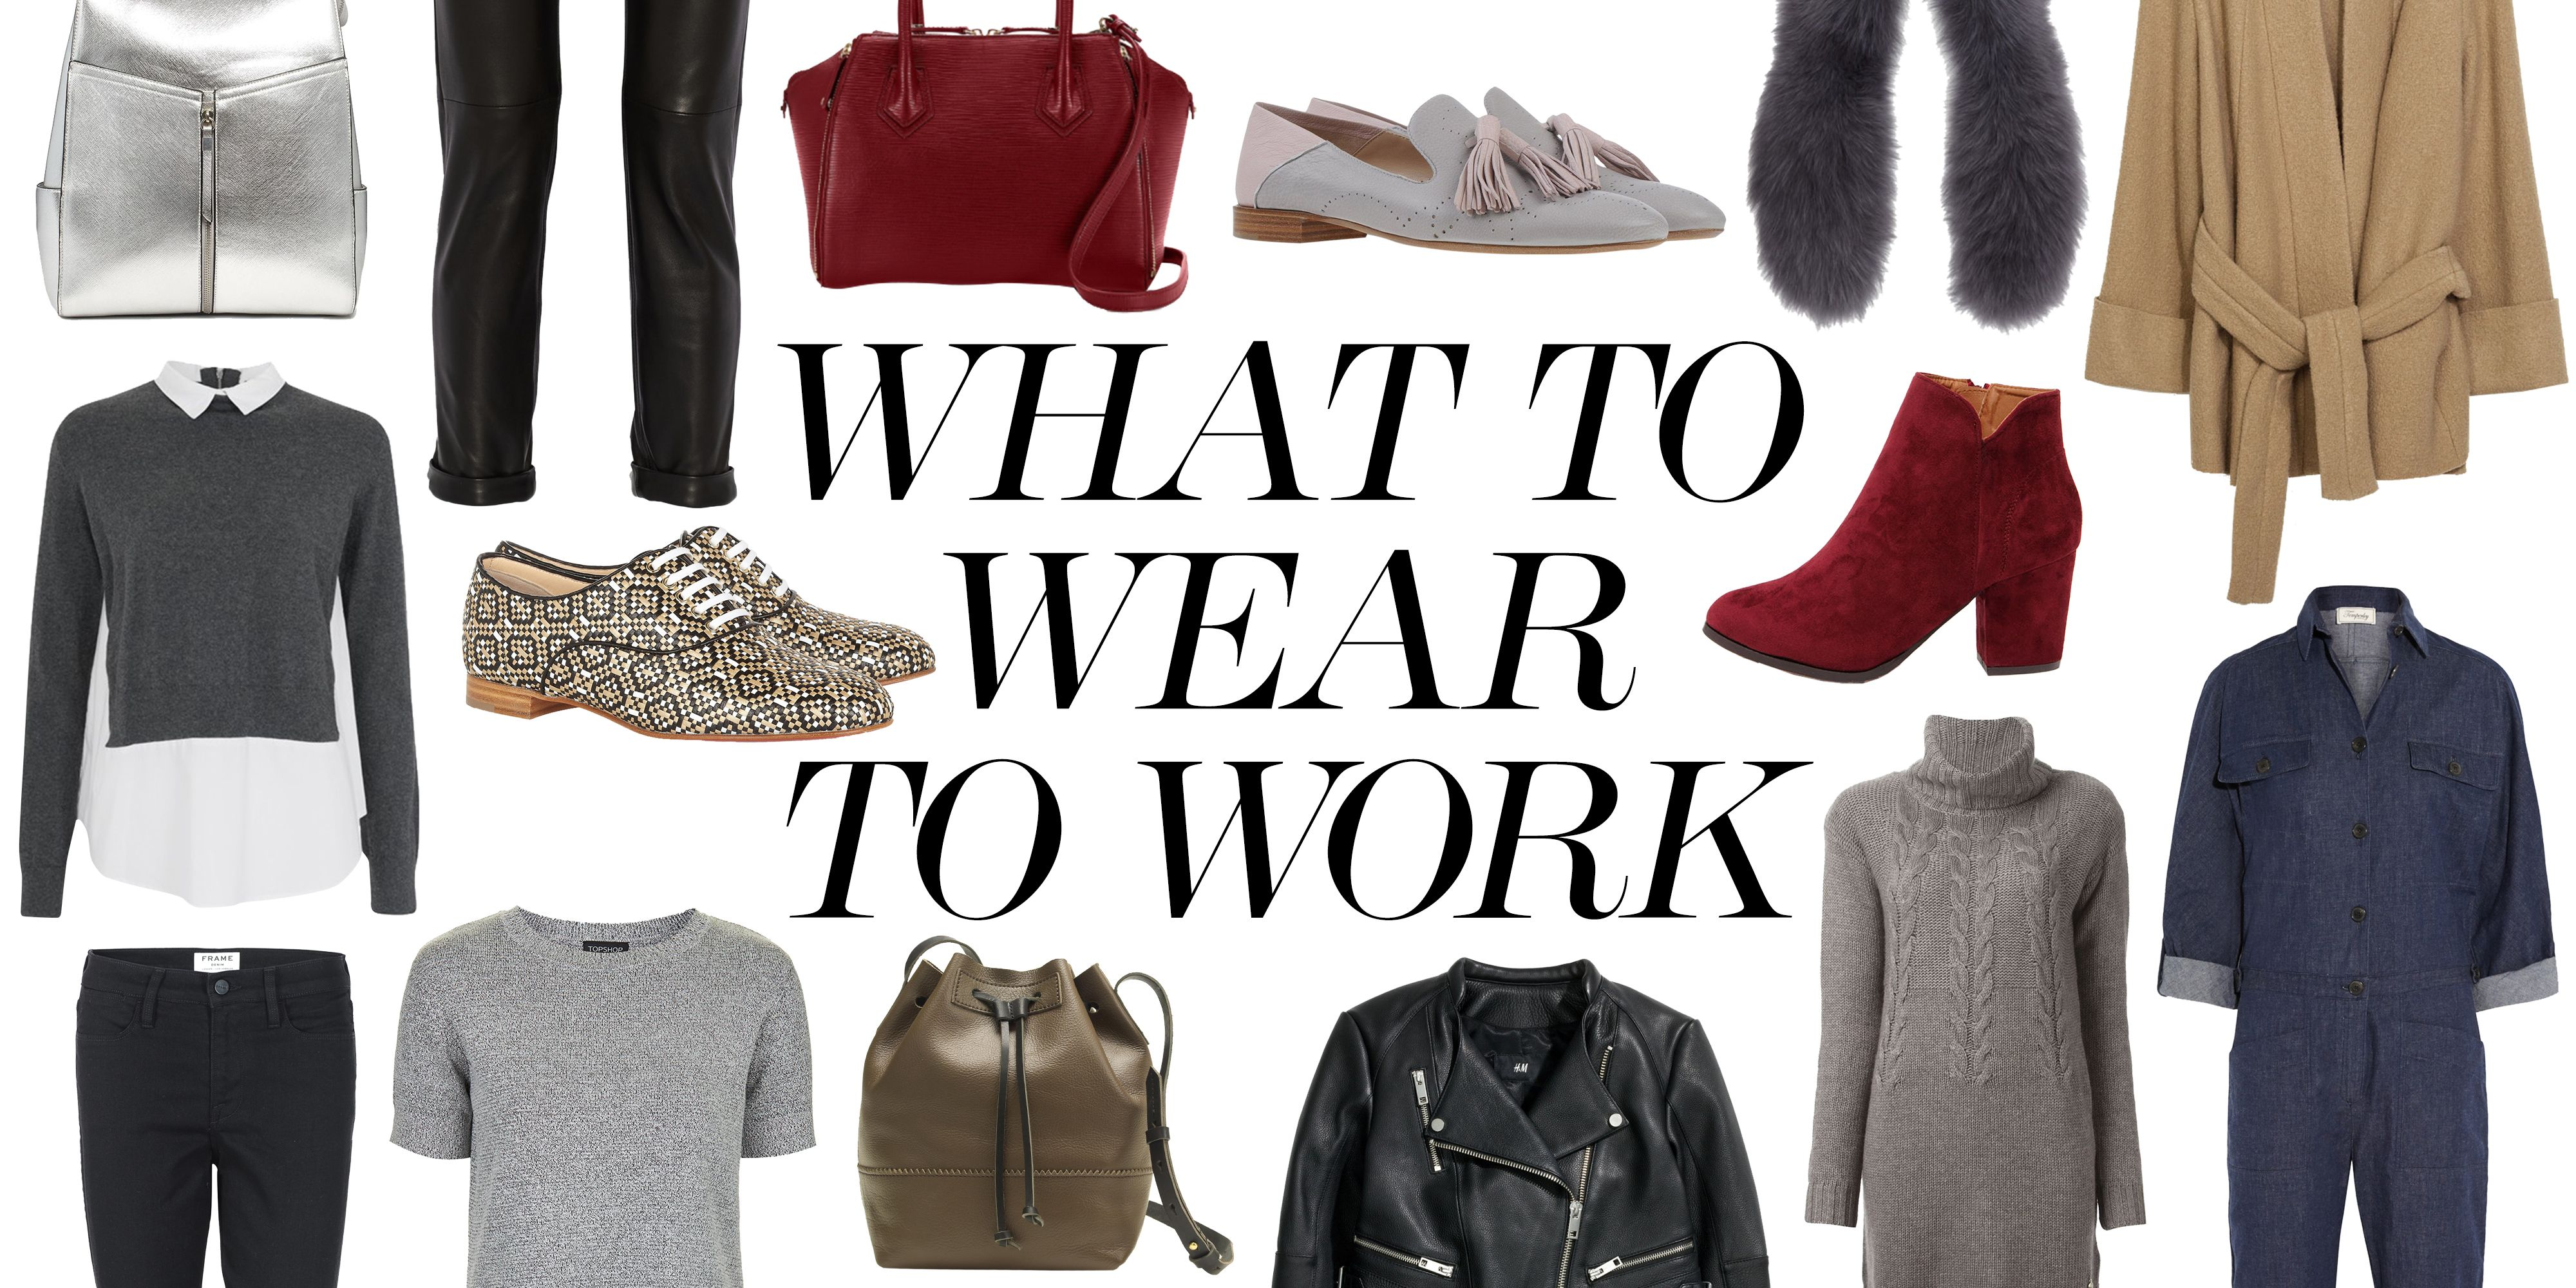 30db7798c4736 image. Fashion. Dec 23, 2014. What to Wear to Work When Nobody ...